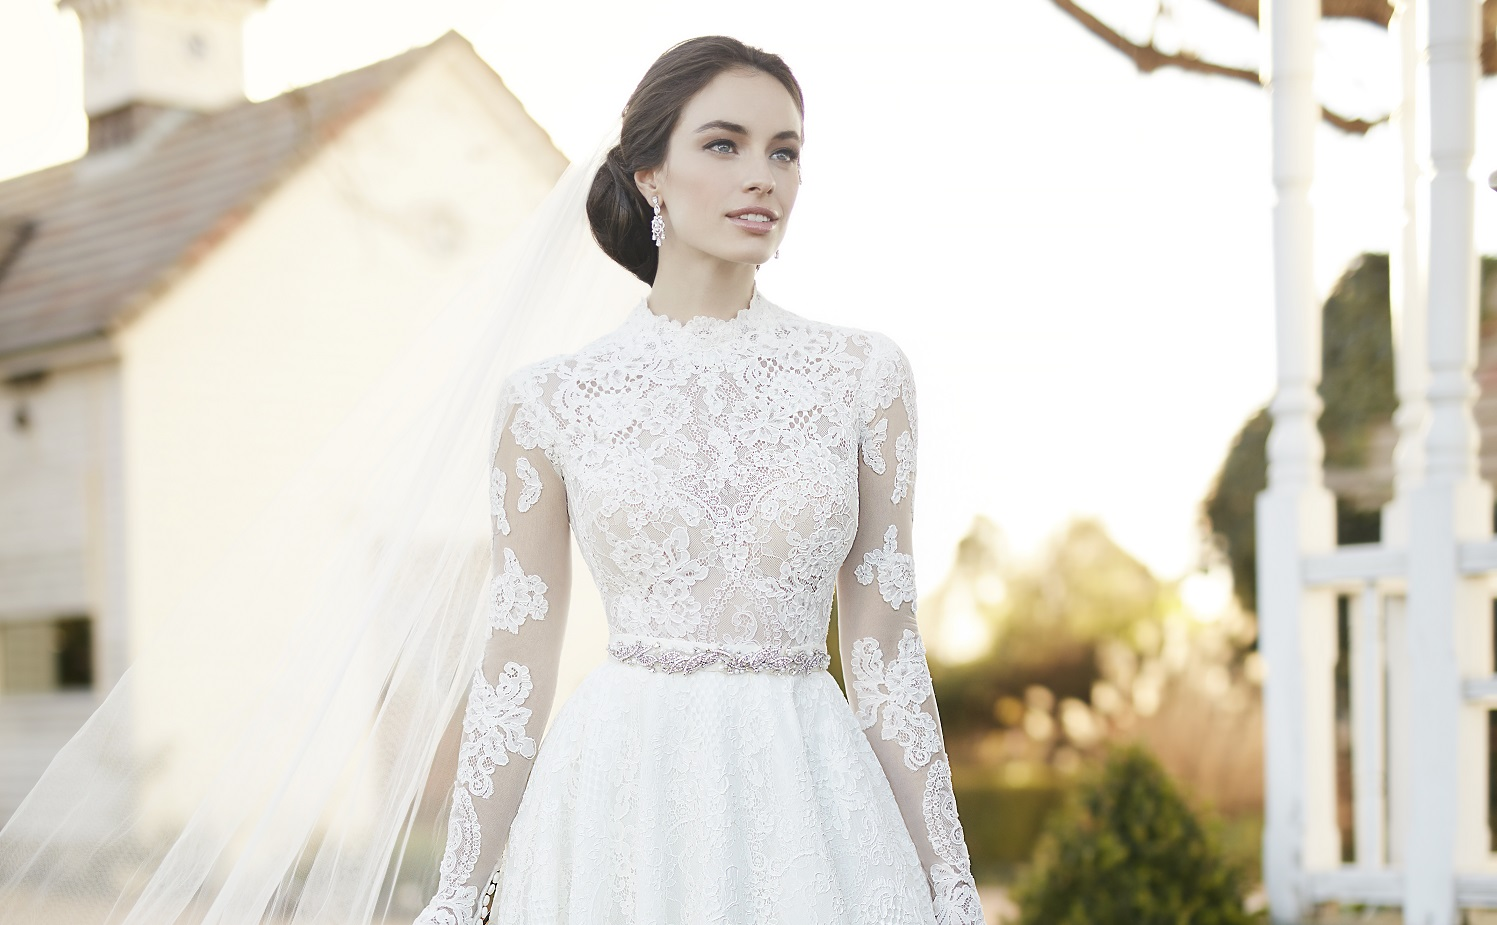 Find Your Dream Dress